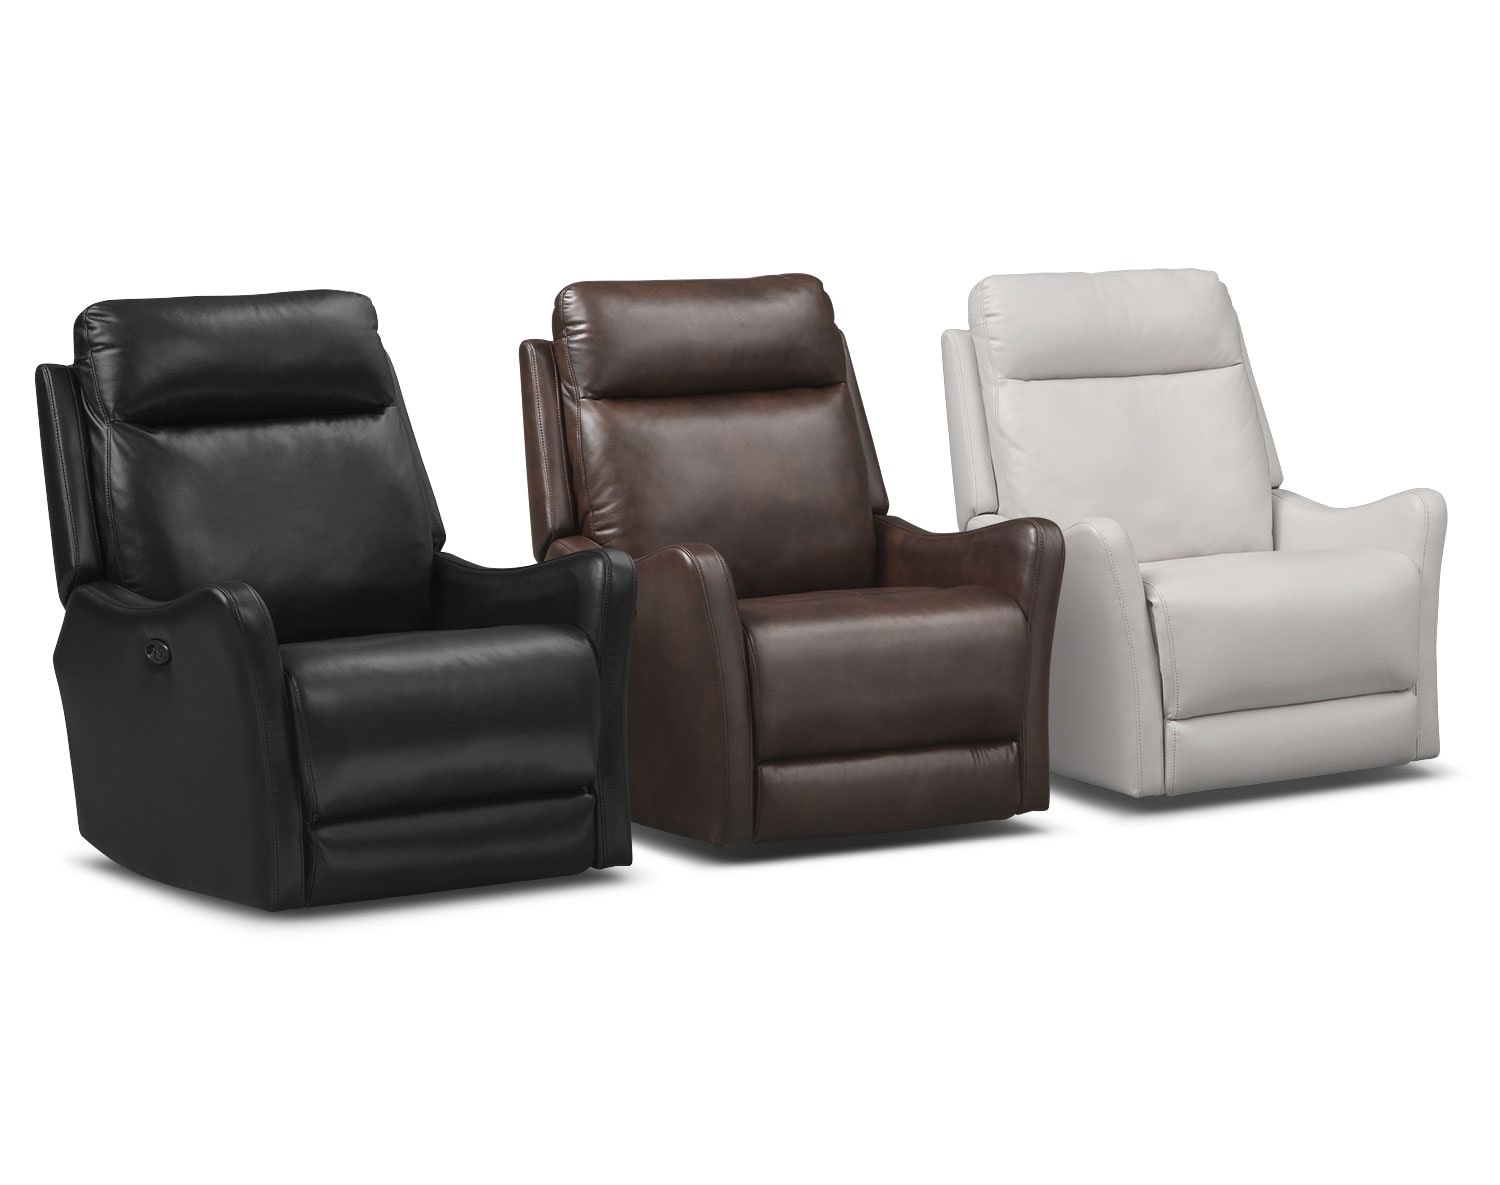 The Enzo Power Recliner Collection